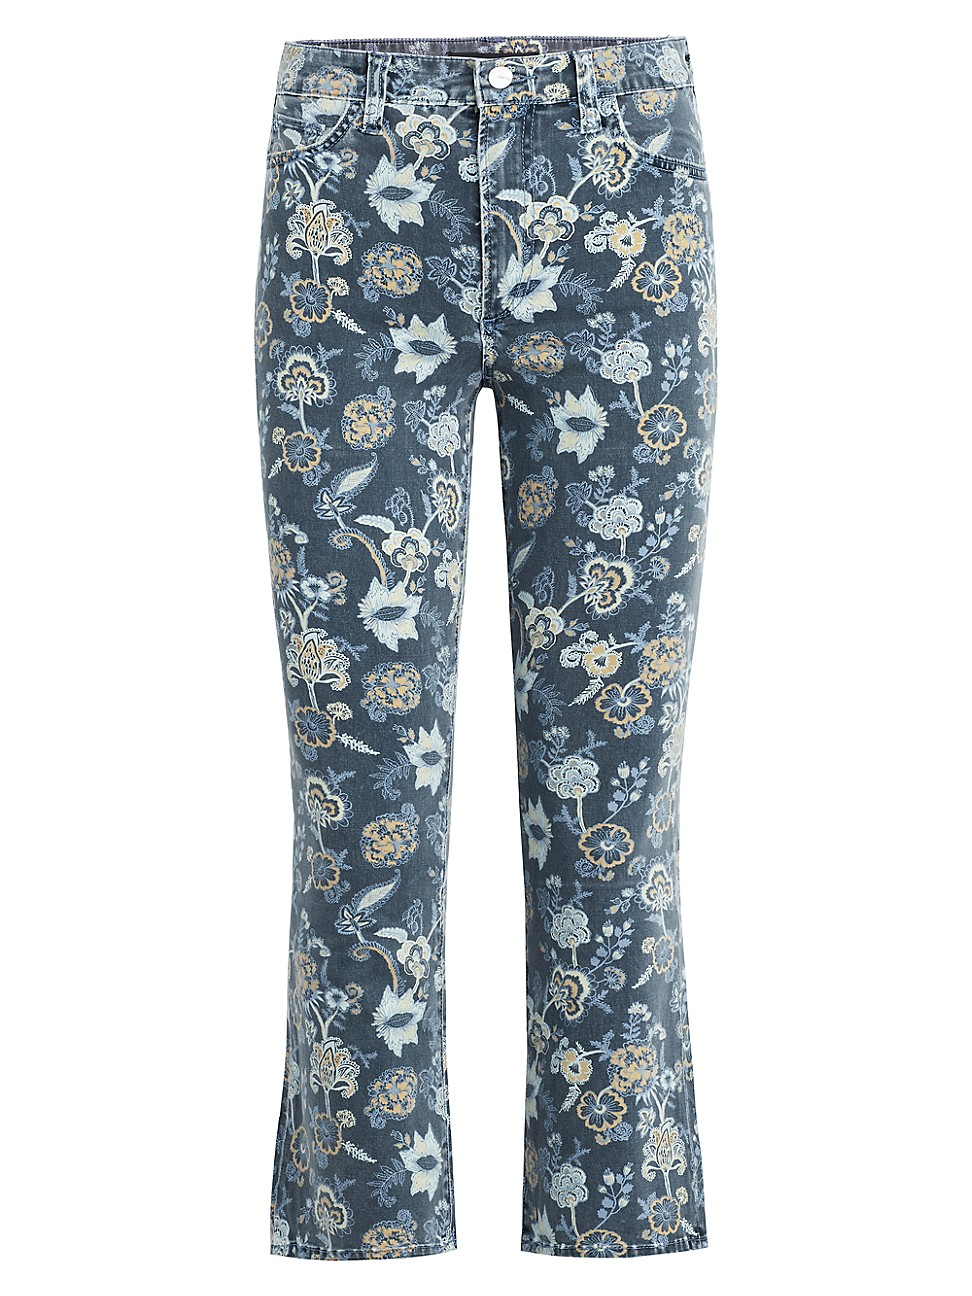 Joe's Jeans Cropped jeans WOMEN'S CALLIE HIGH-RISE FLORAL CROPPED JEANS